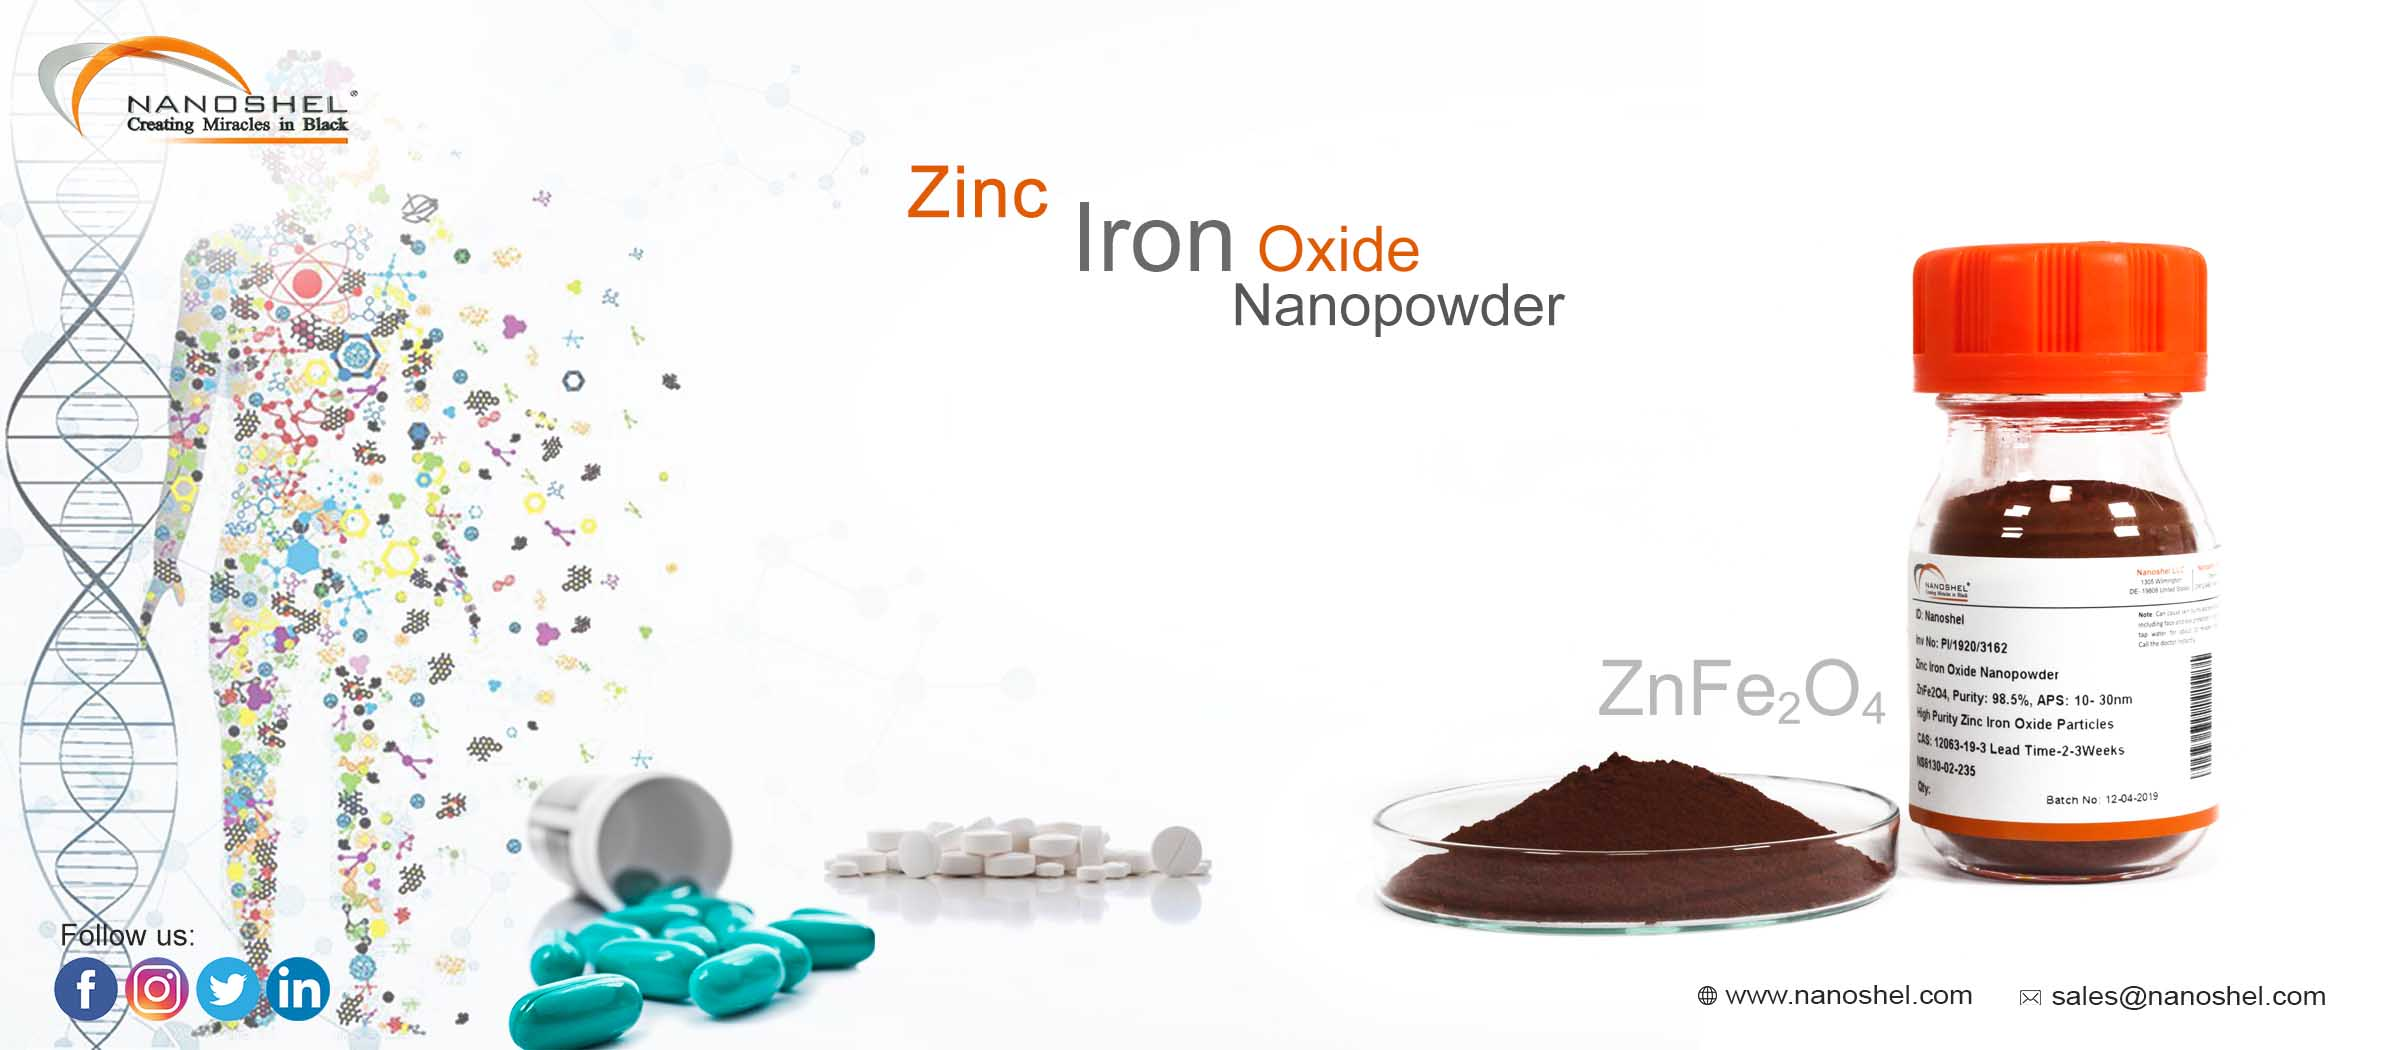 Zinc Iron Oxide Nanoparticles